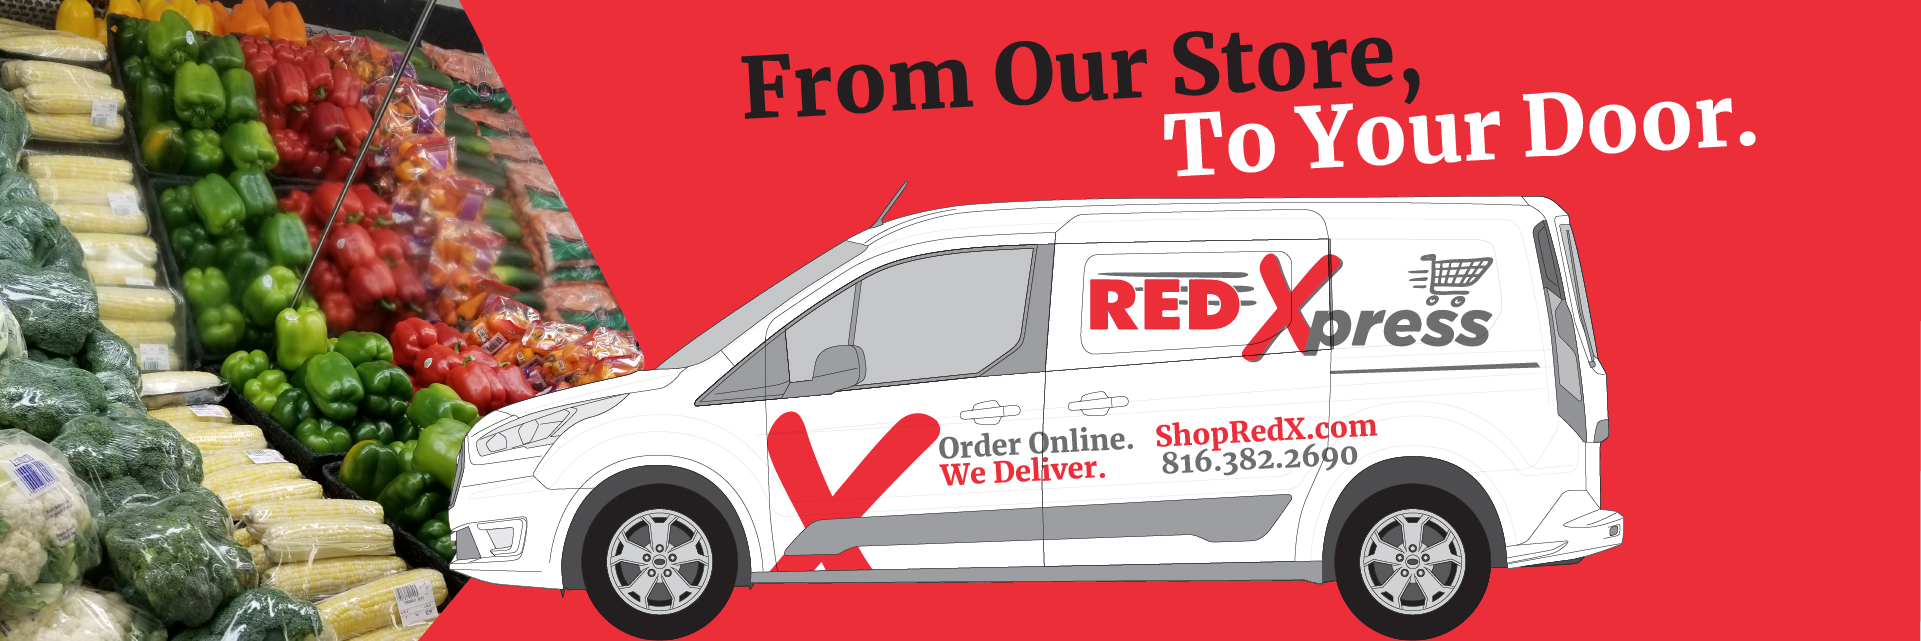 From Our Store, To Your Door